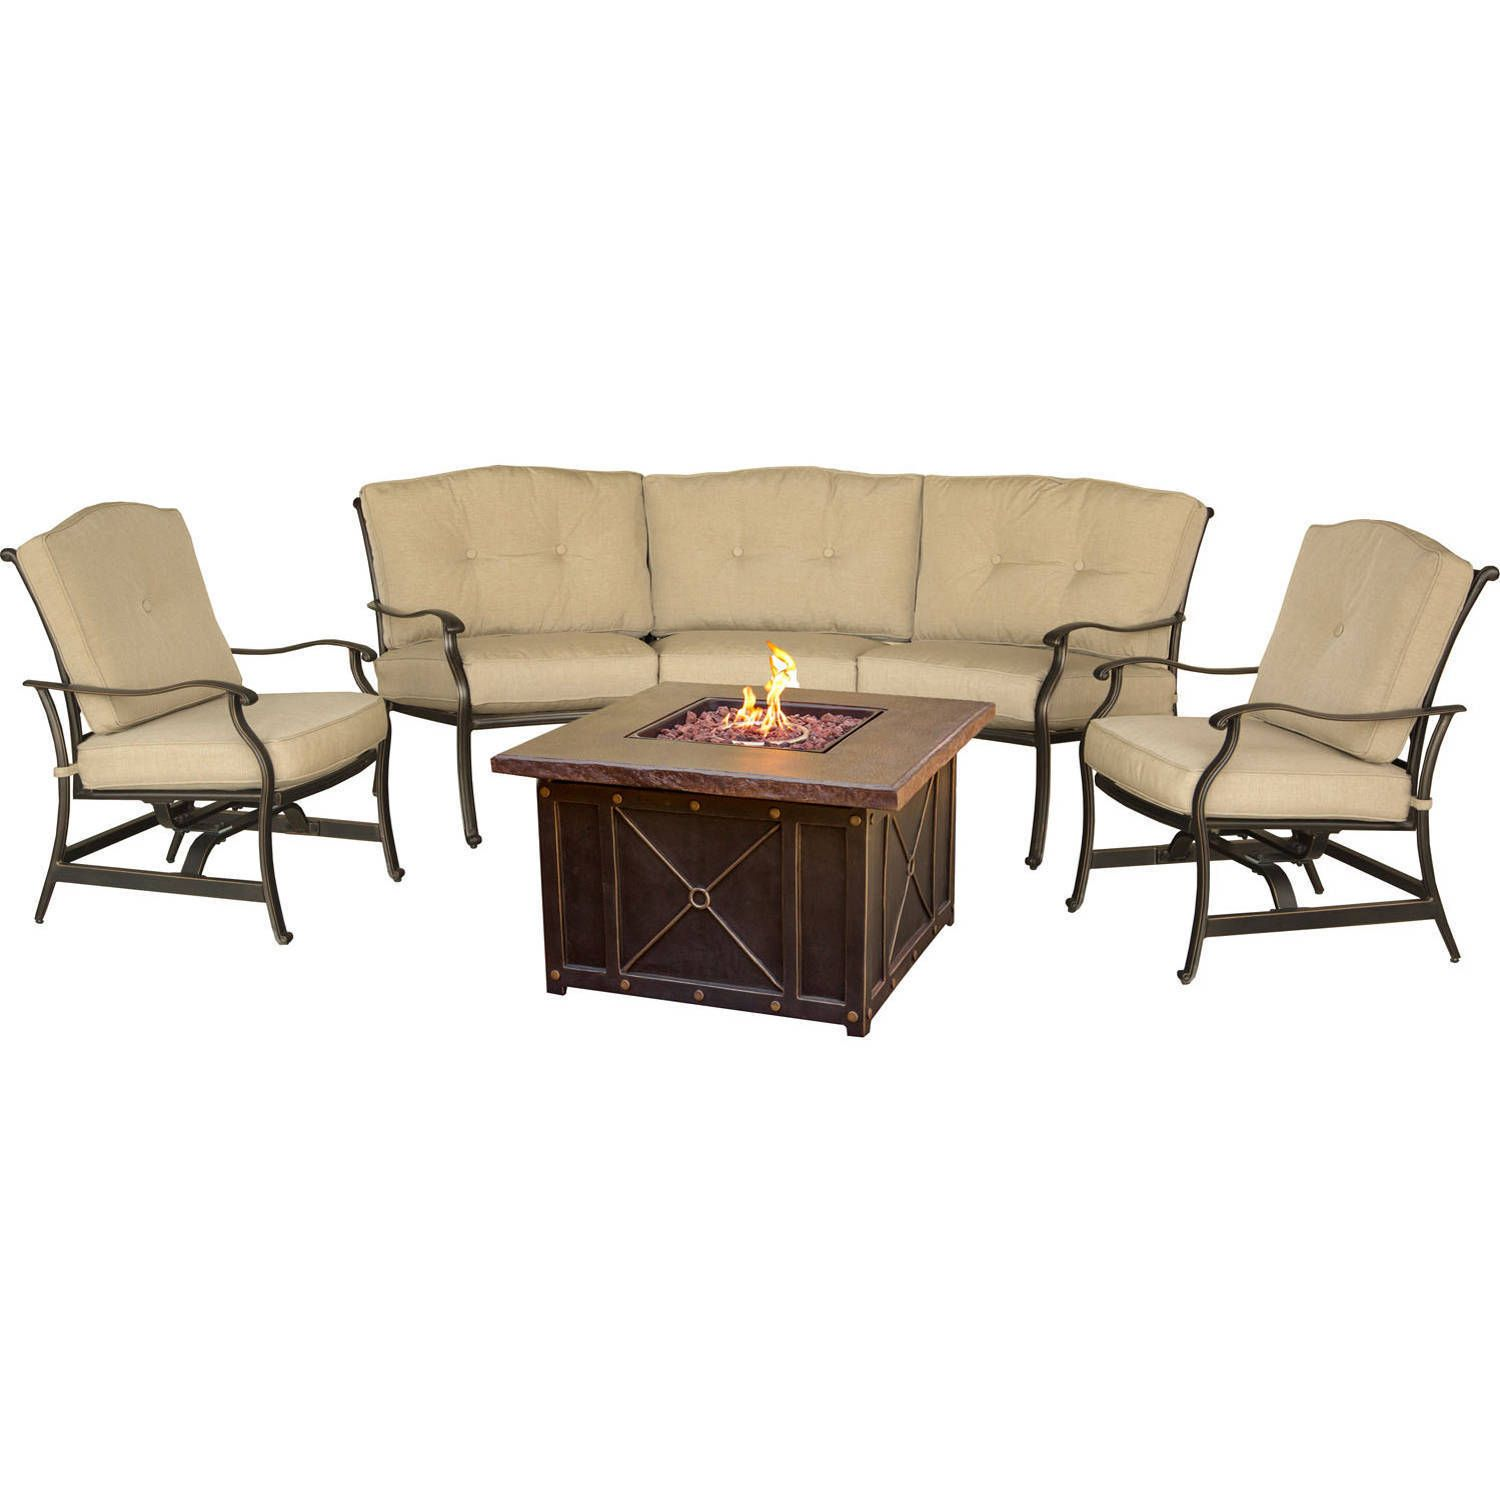 8caa53af27e9b73abdd1b80efec18f7a Top Result 50 Awesome Patio Dining Table with Fire Pit